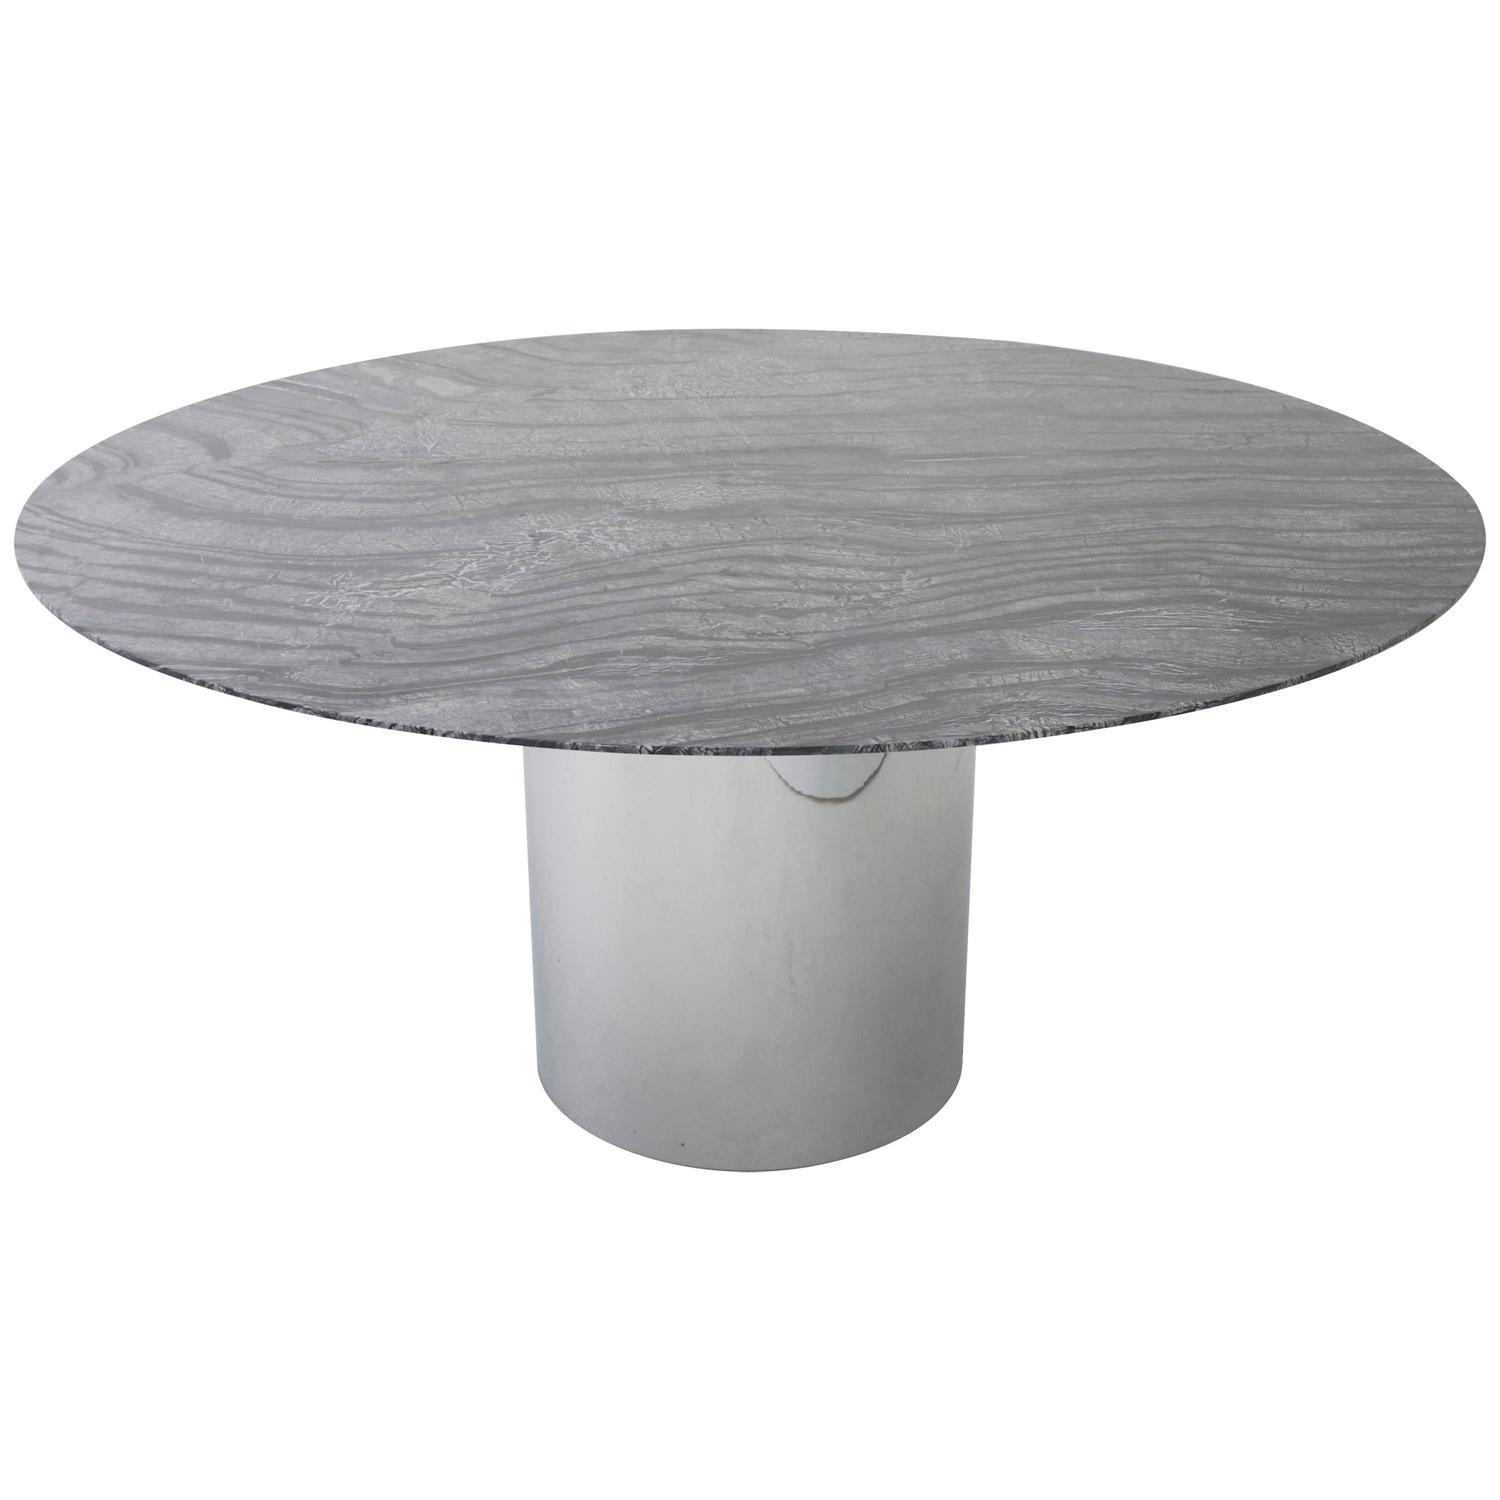 Knoll dining table with 60 round marble top at 1stdibs for Round stone top dining table